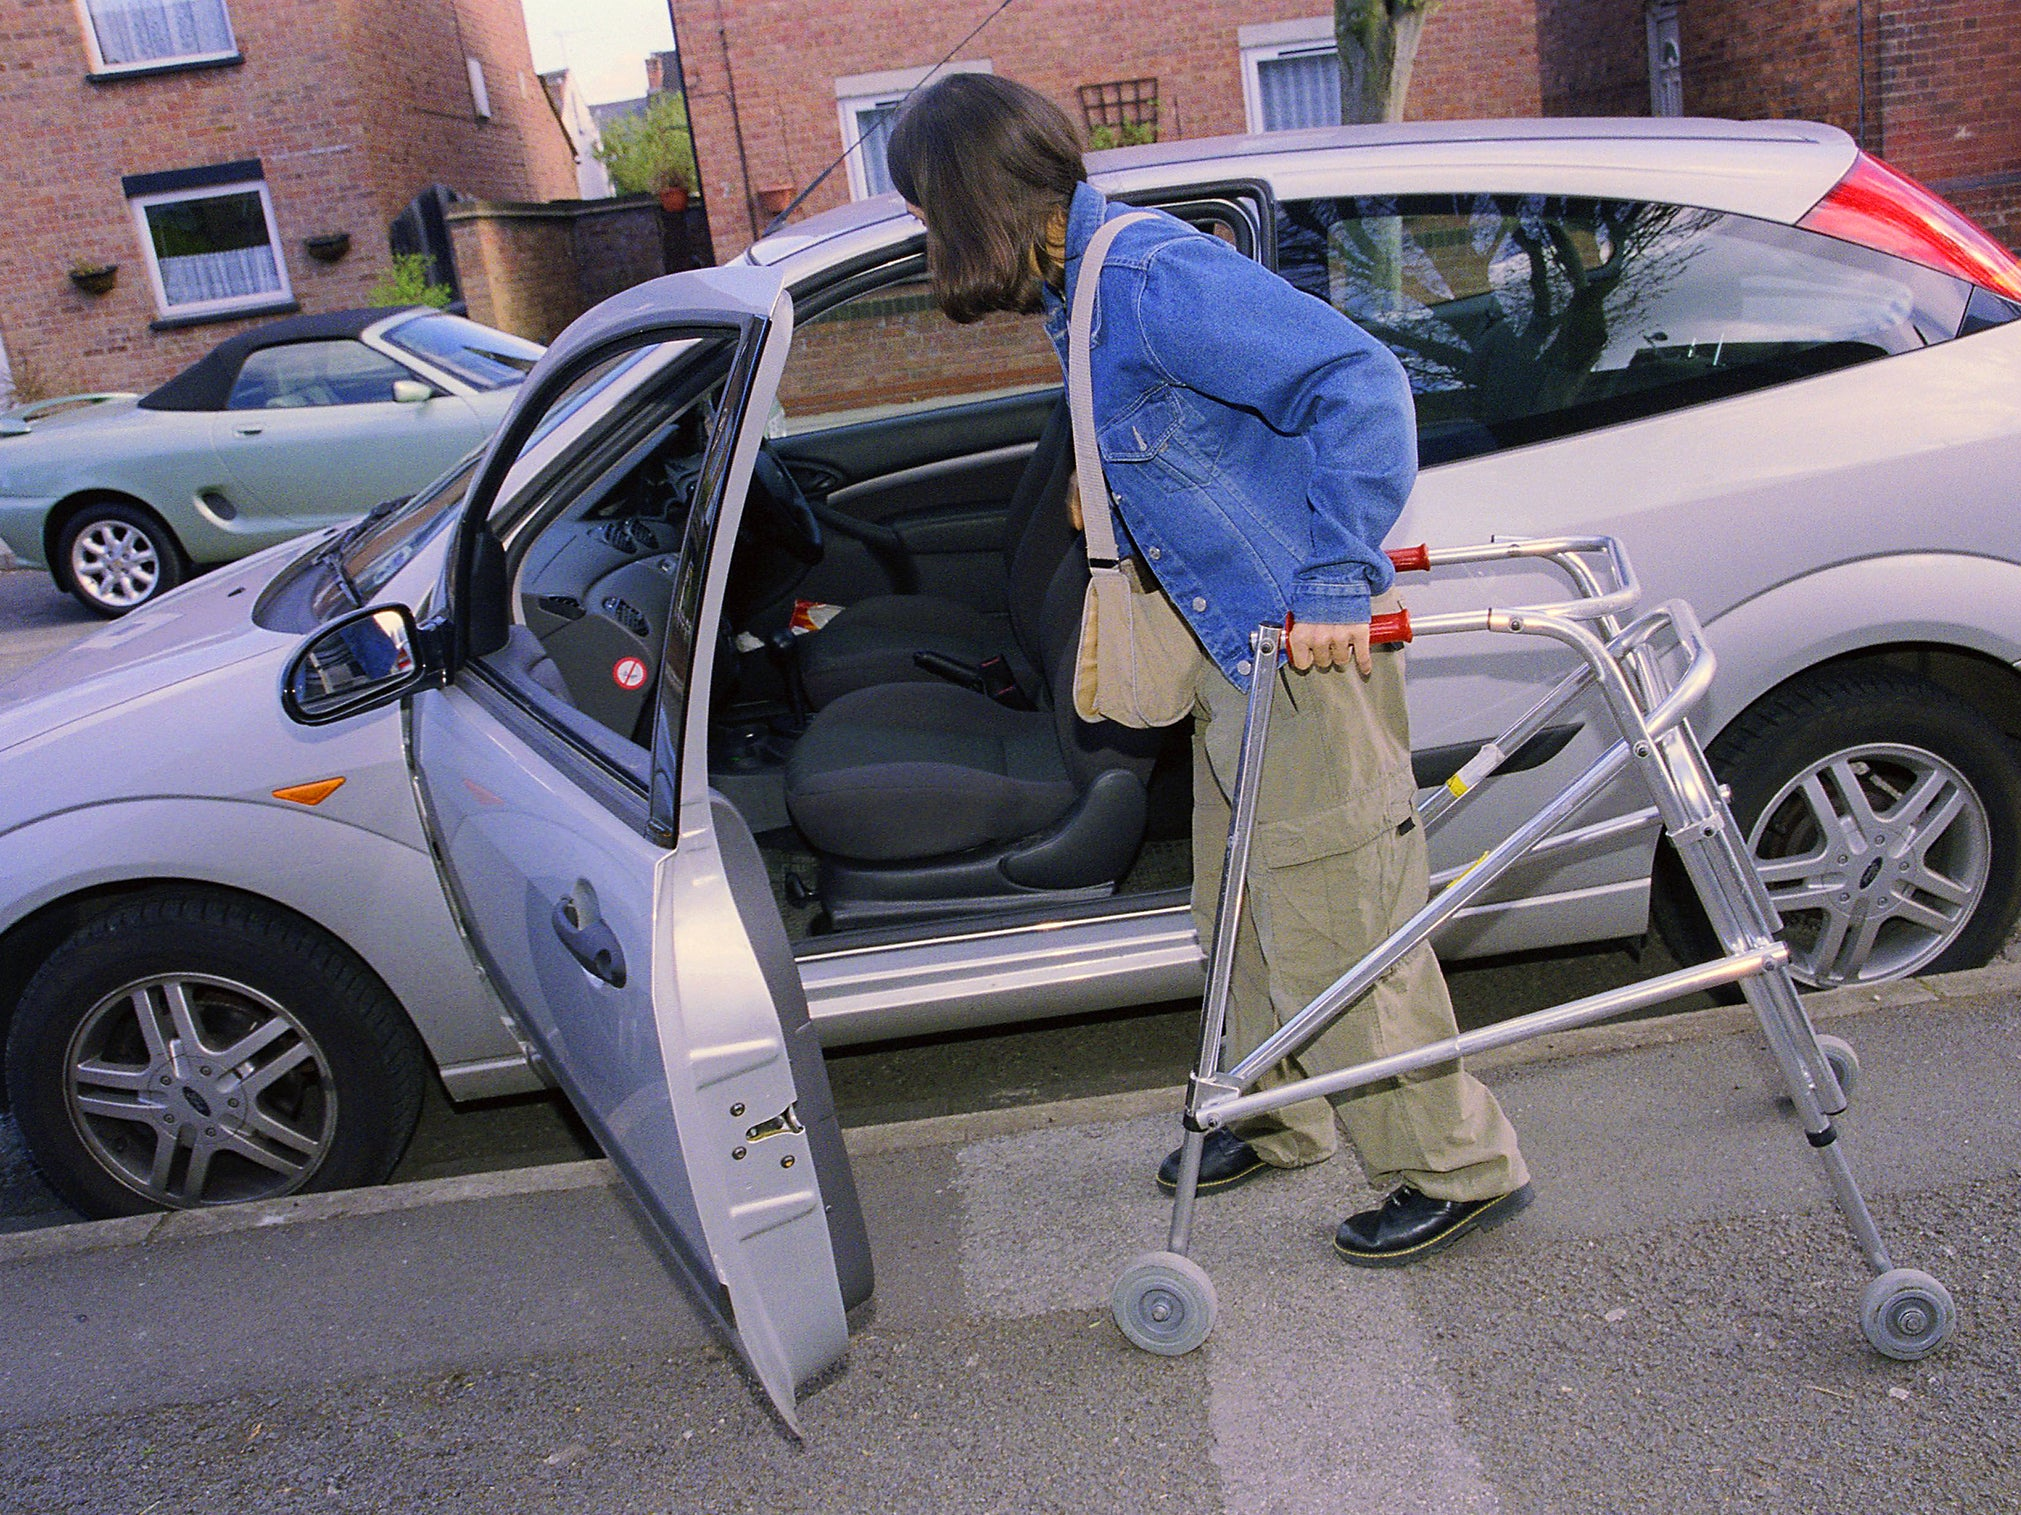 50 000 Disabled People Have Adapted Vehicles Removed After Benefits